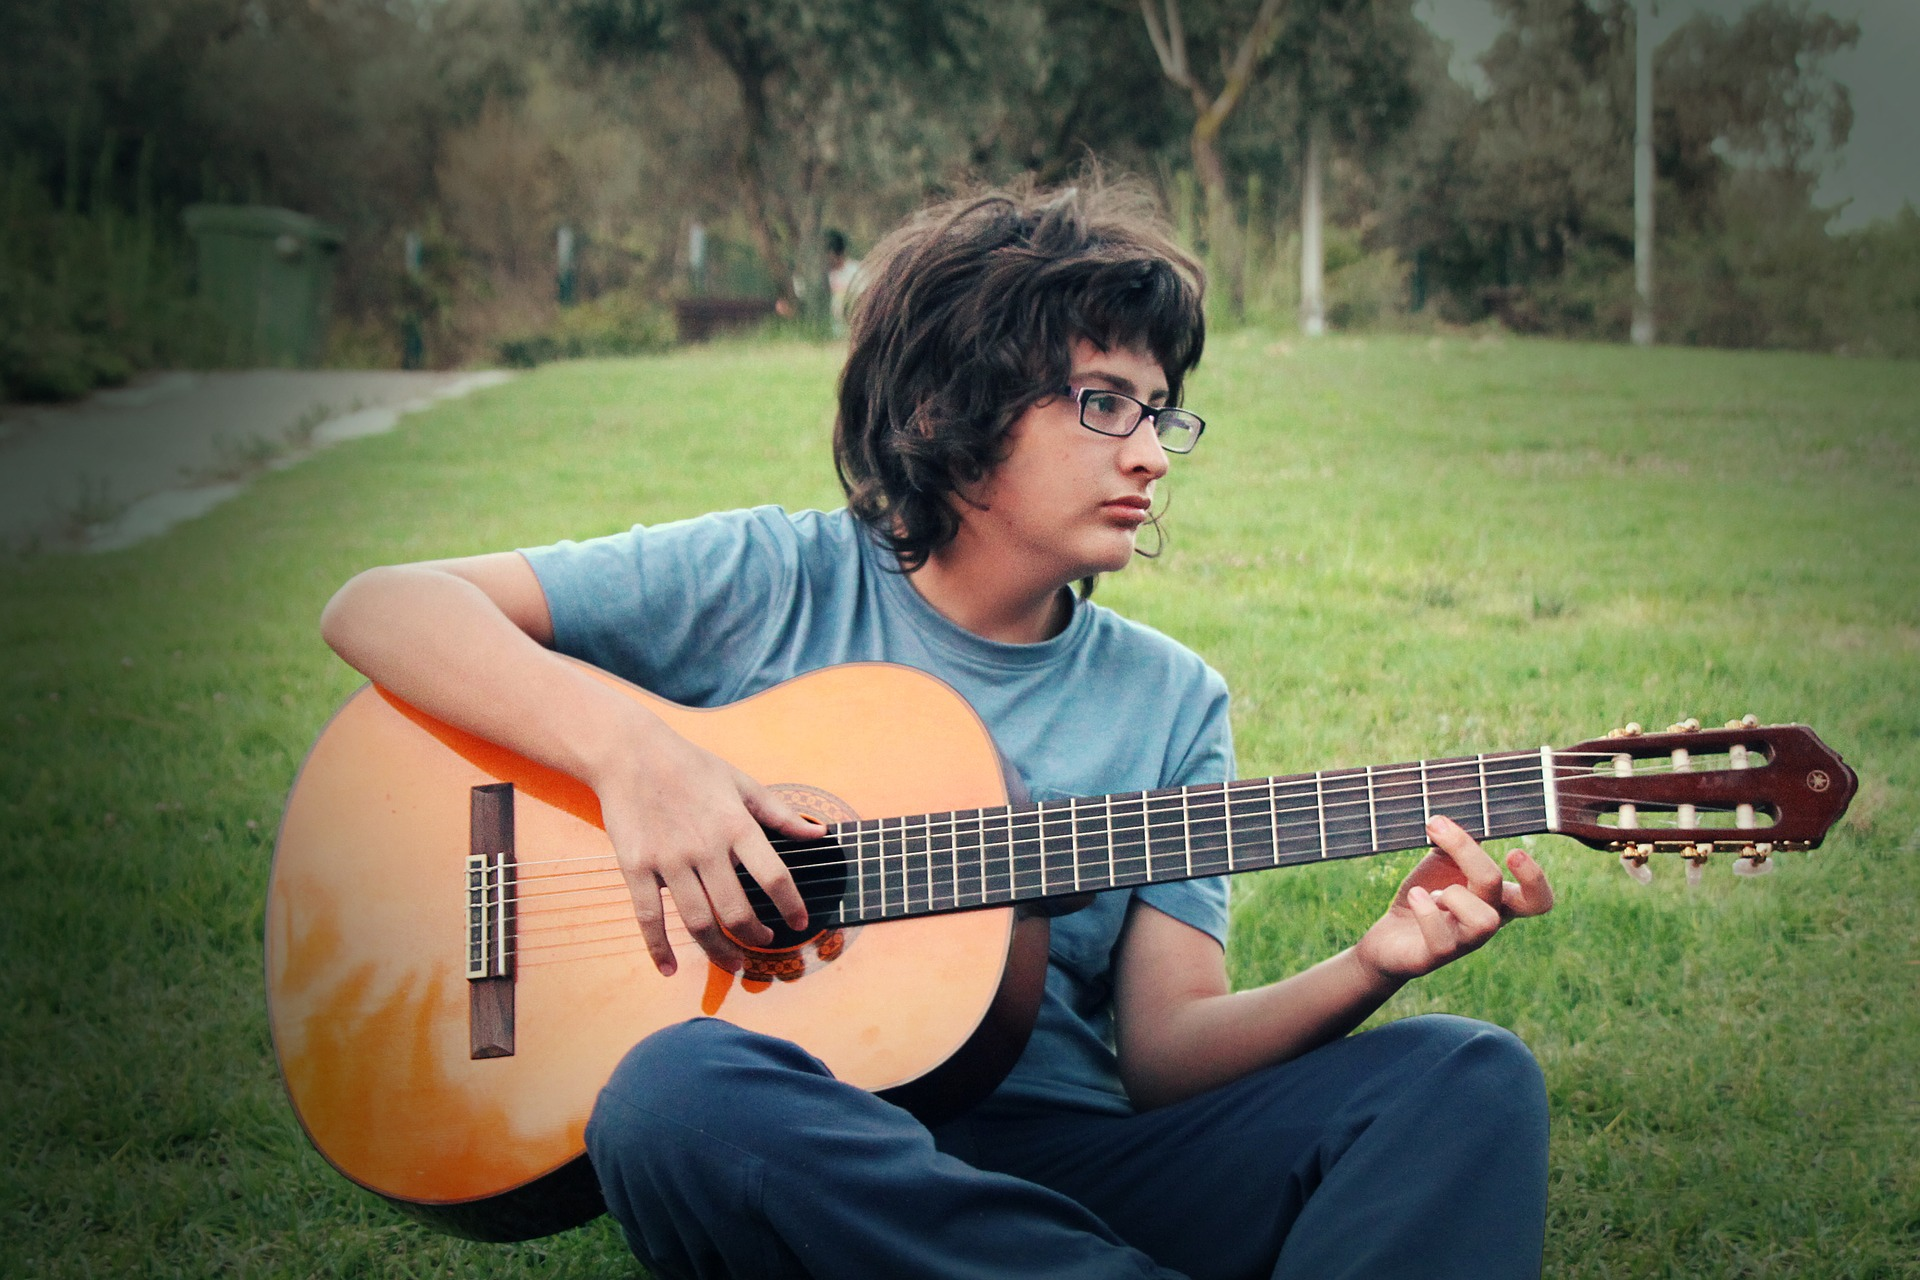 teen boy playing guitar in grass